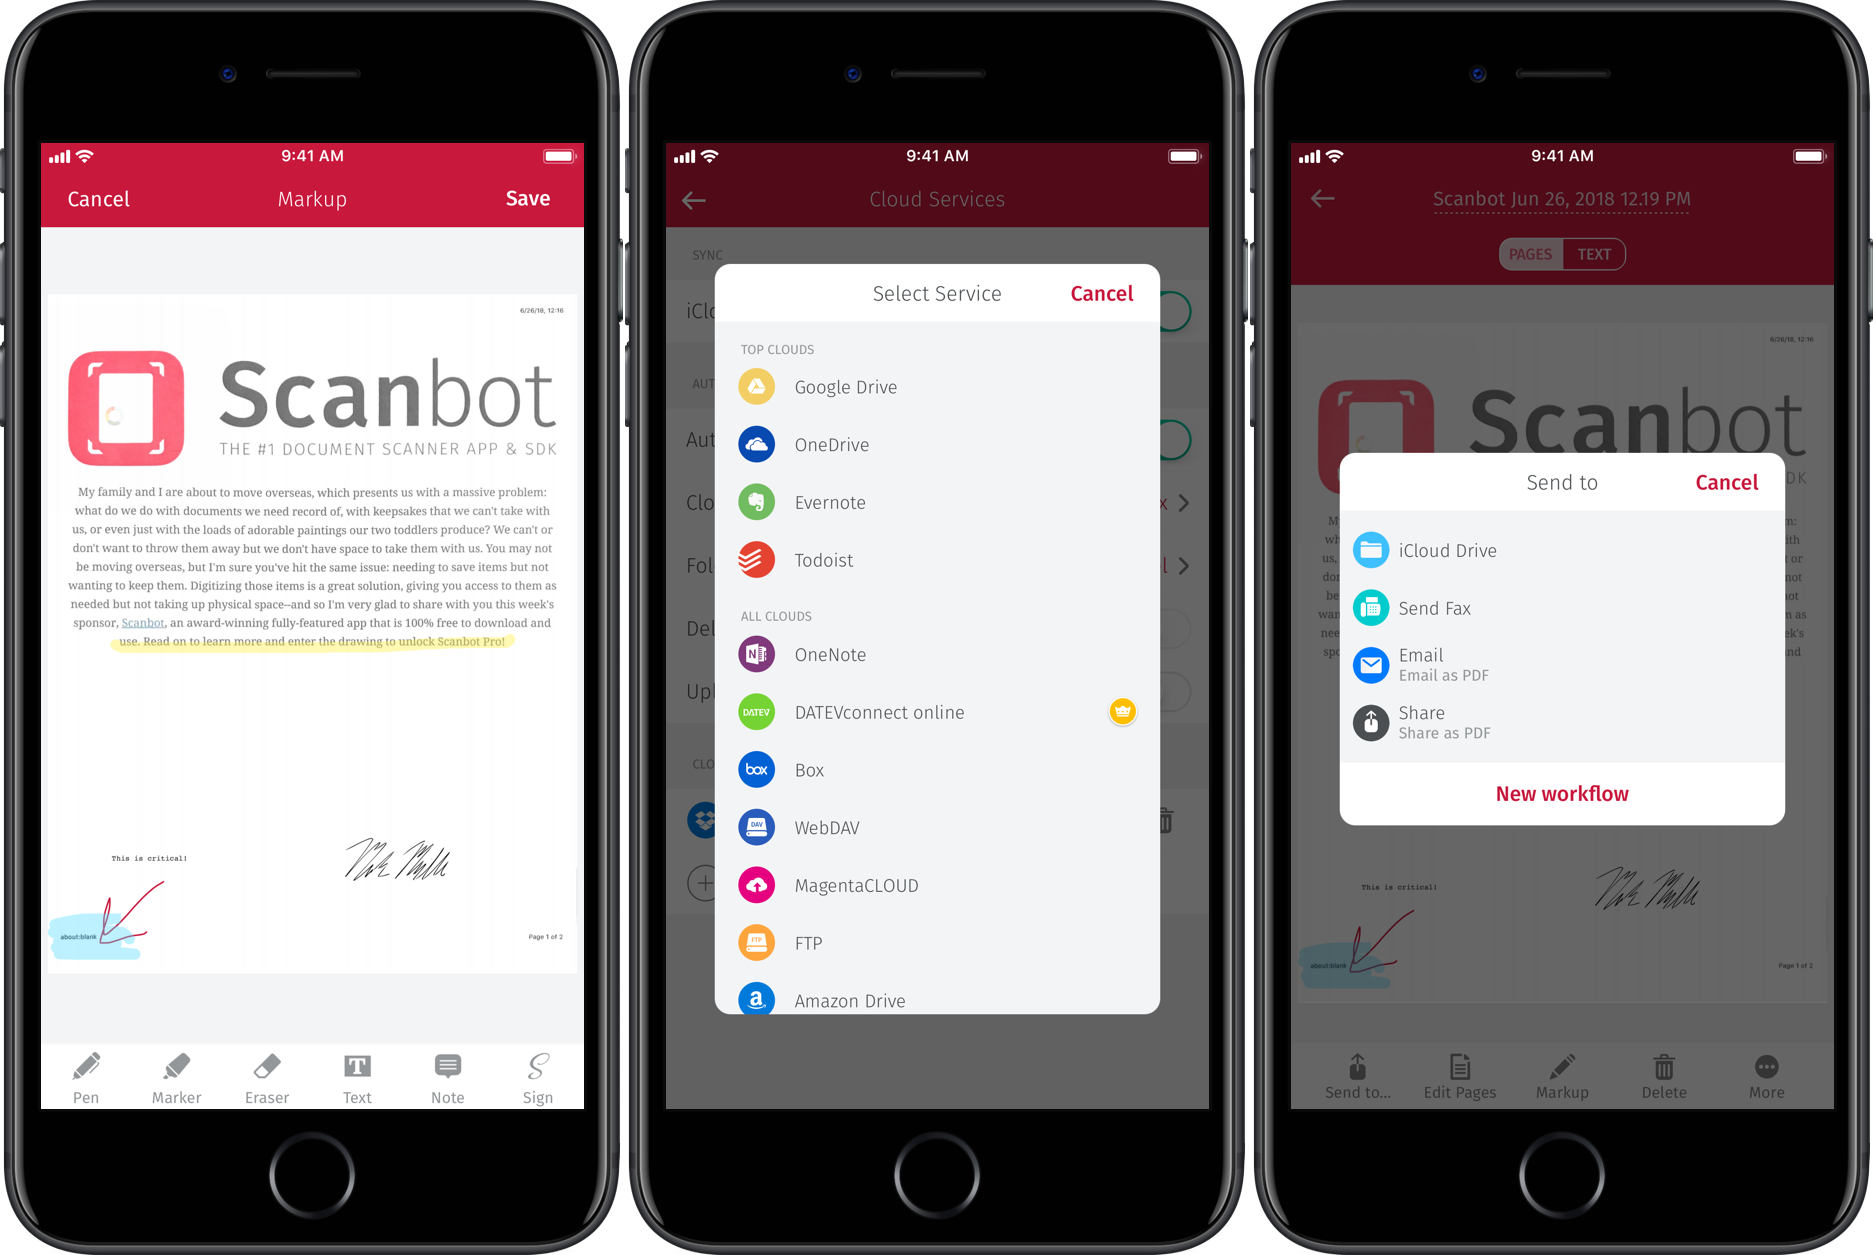 App giveaway: Scanbot is an award-winning scan app with OCR